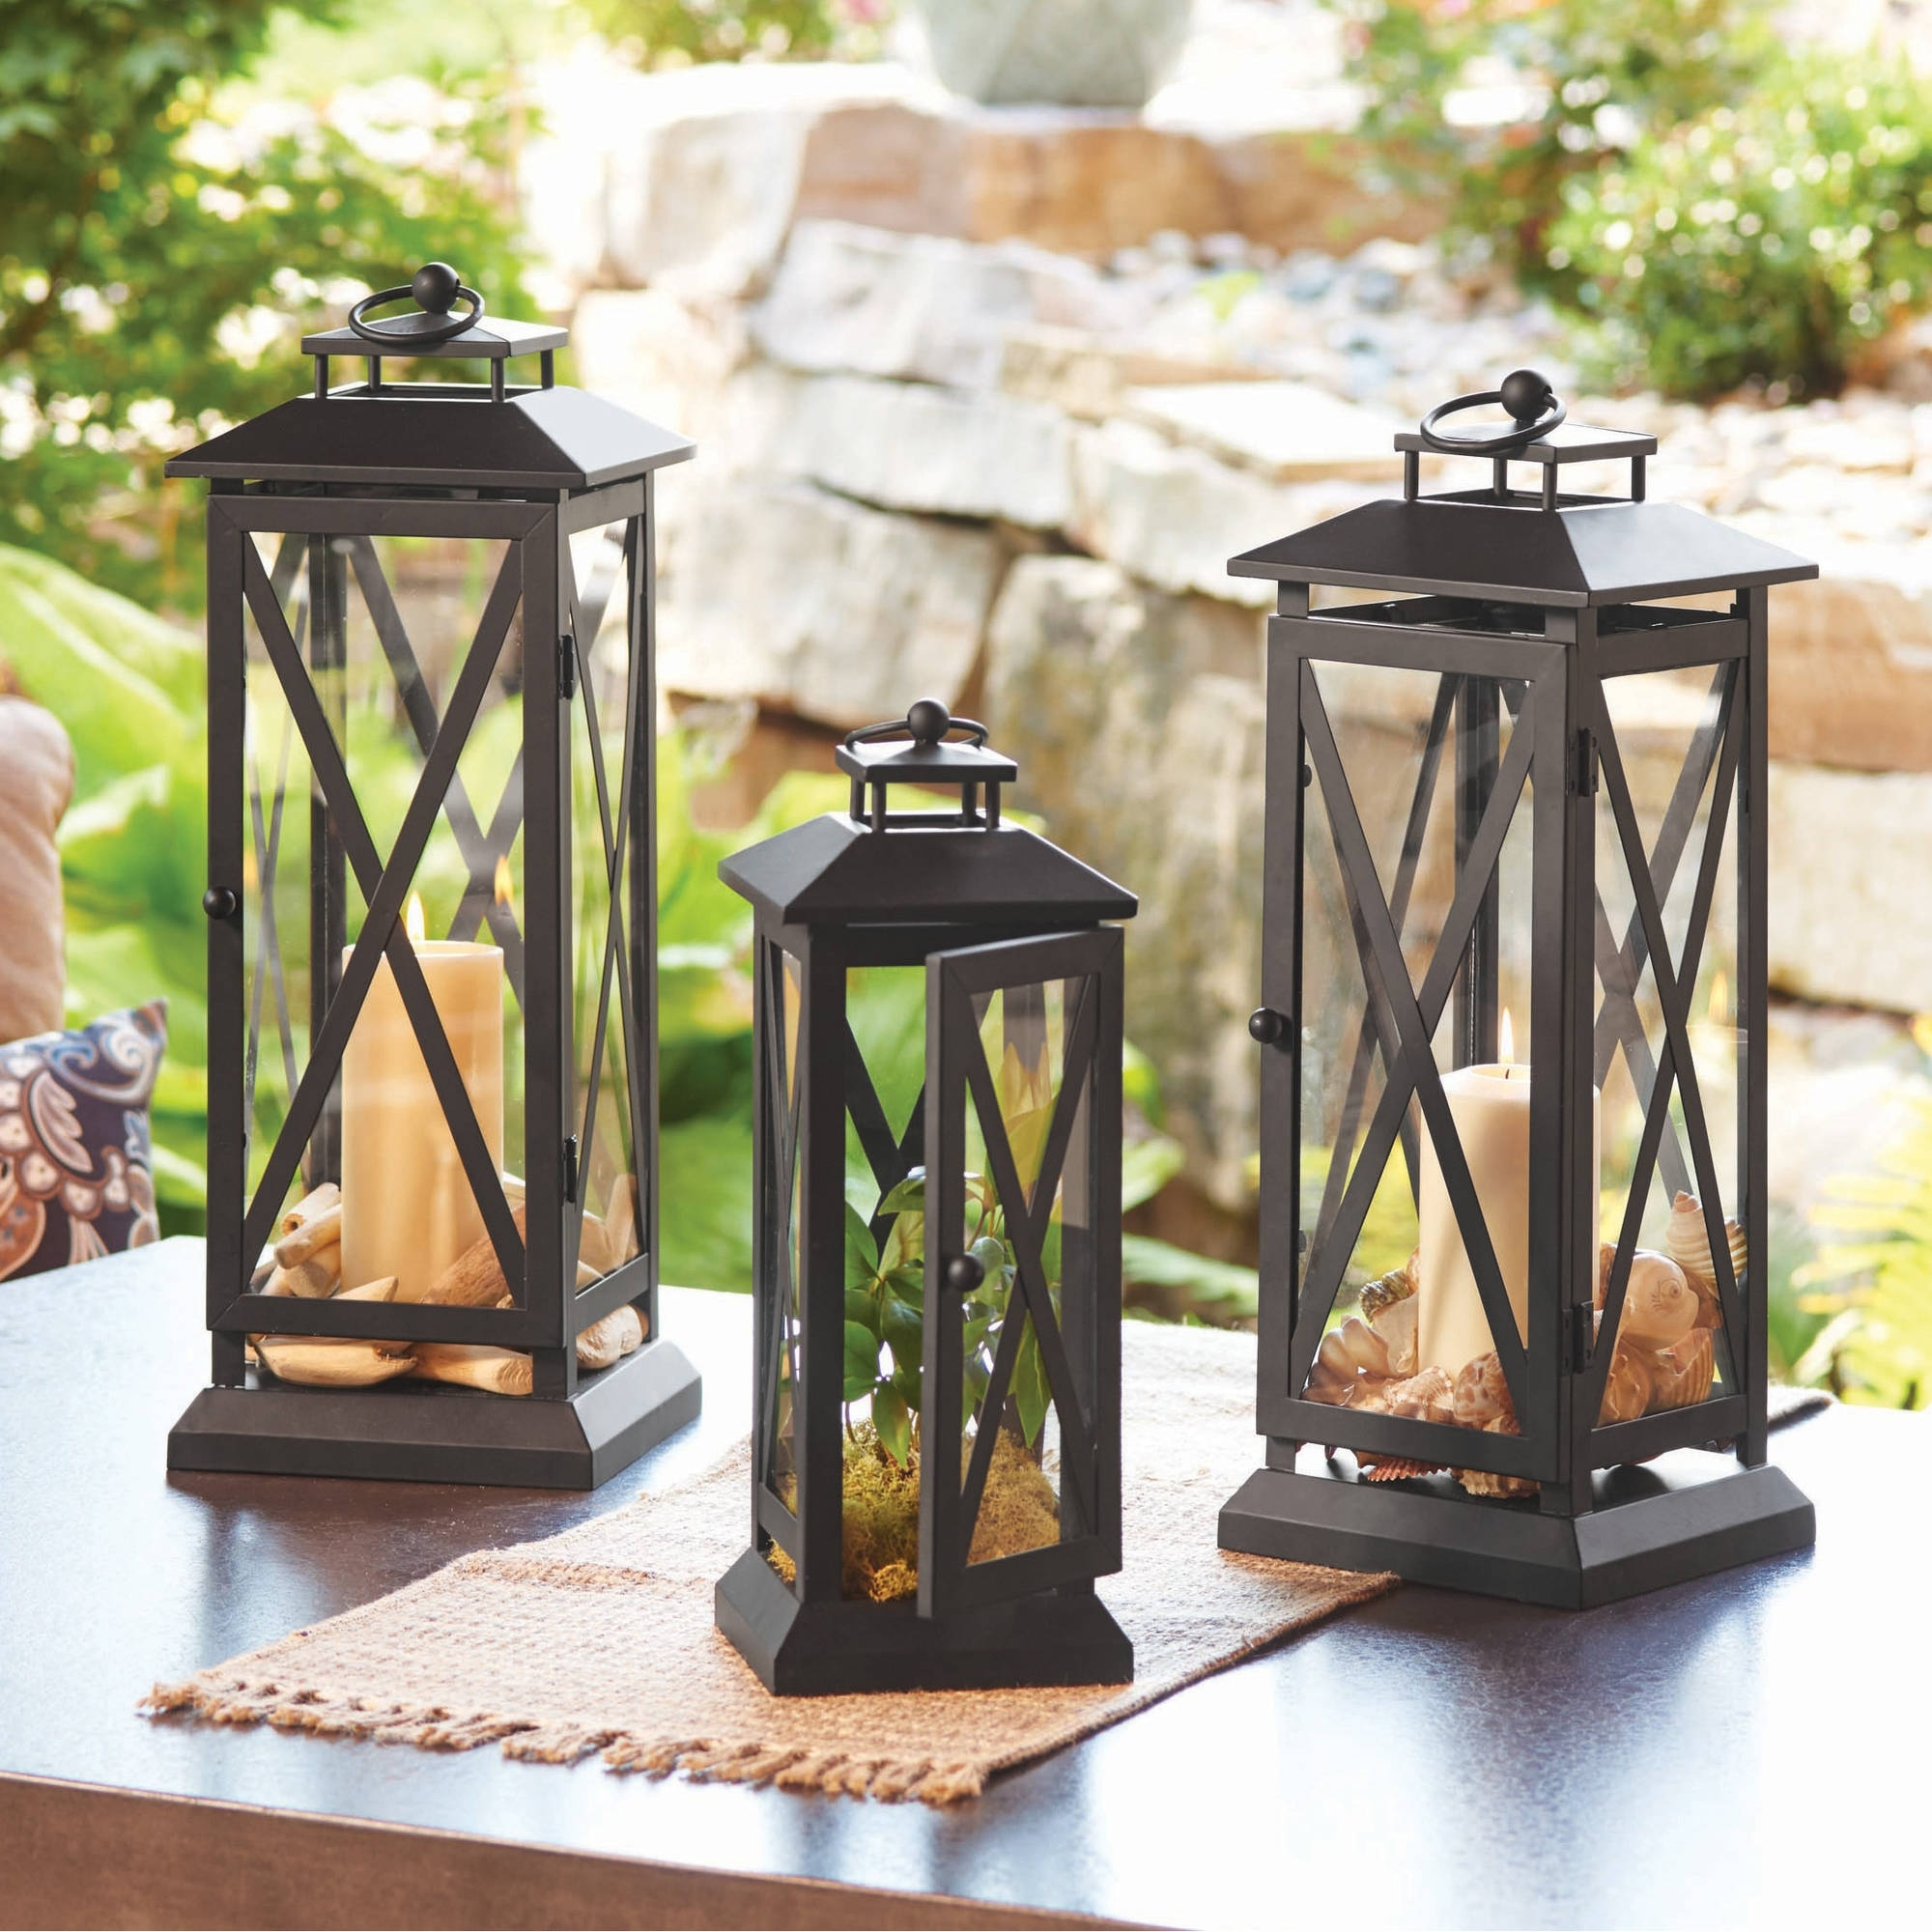 Fashionable Outdoor Lanterns Decors With Regard To Better Homes And Gardens Crossbar Metal Outdoor Lantern – Walmart (Gallery 2 of 20)